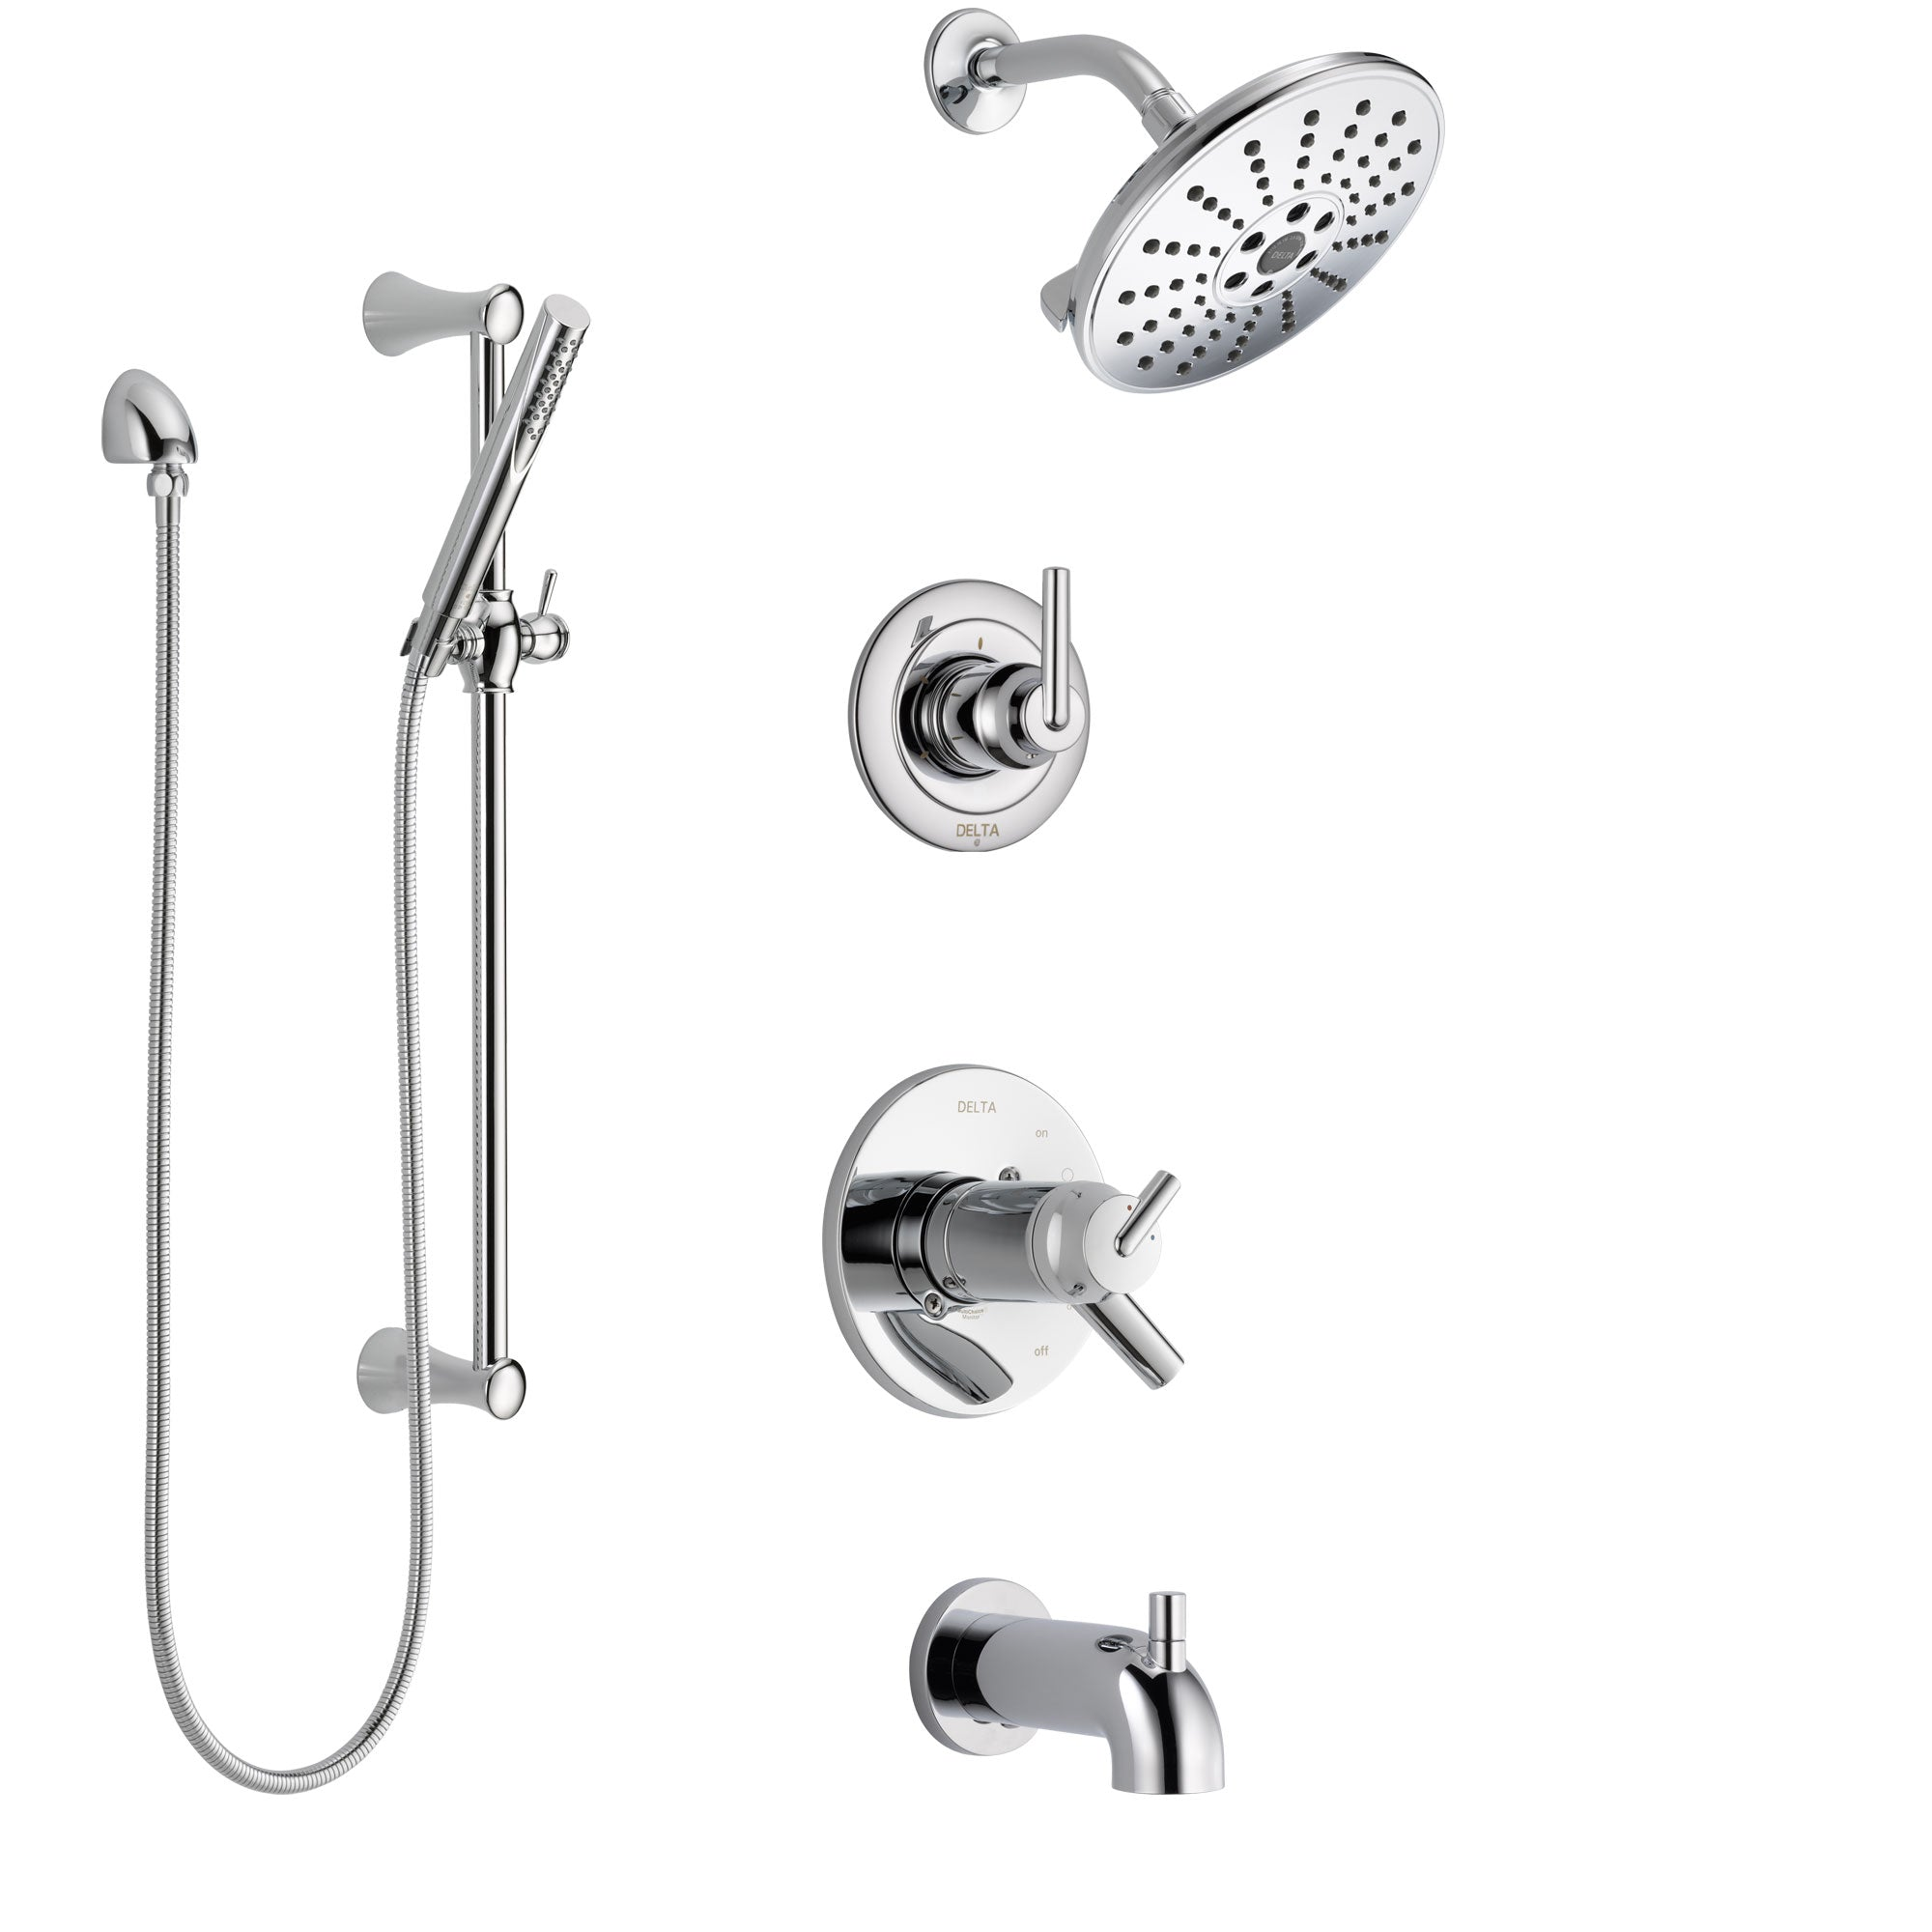 Delta Trinsic Chrome Finish Tub and Shower System with Dual Thermostatic Control Handle, Diverter, Showerhead, and Hand Shower SS17T45925